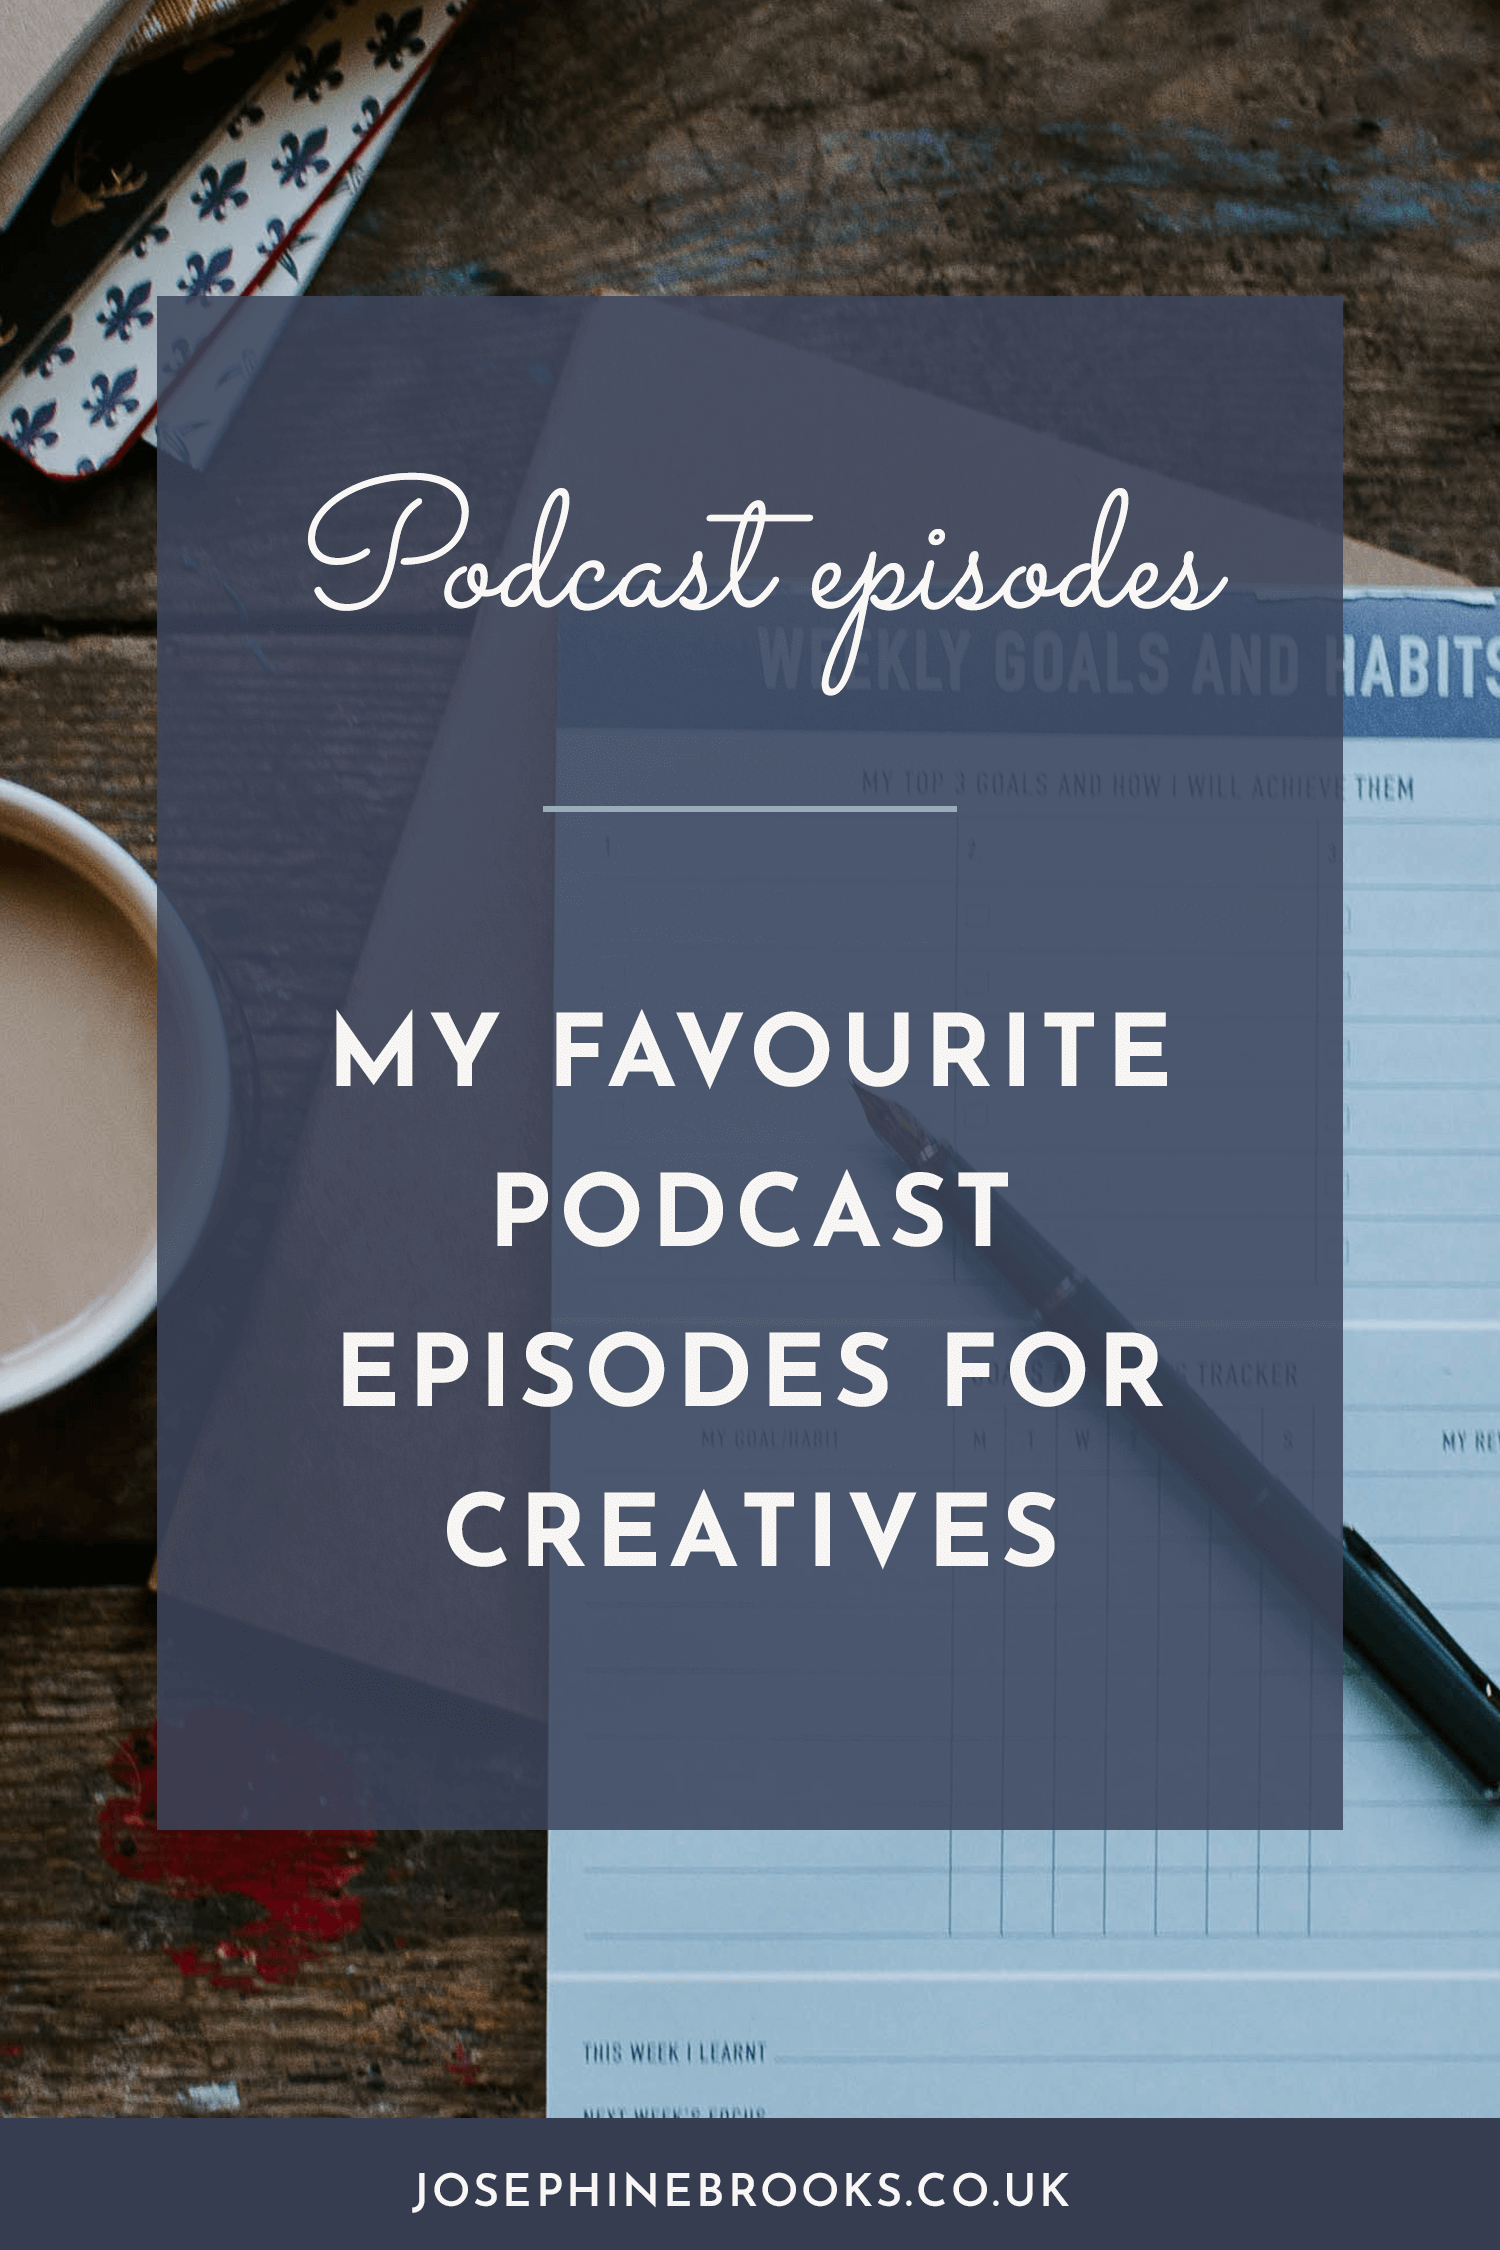 My favourite podcast episodes for creatives, Podcast recommendations, Podcasts for creatives, creative business podcast | Josephine Brooks